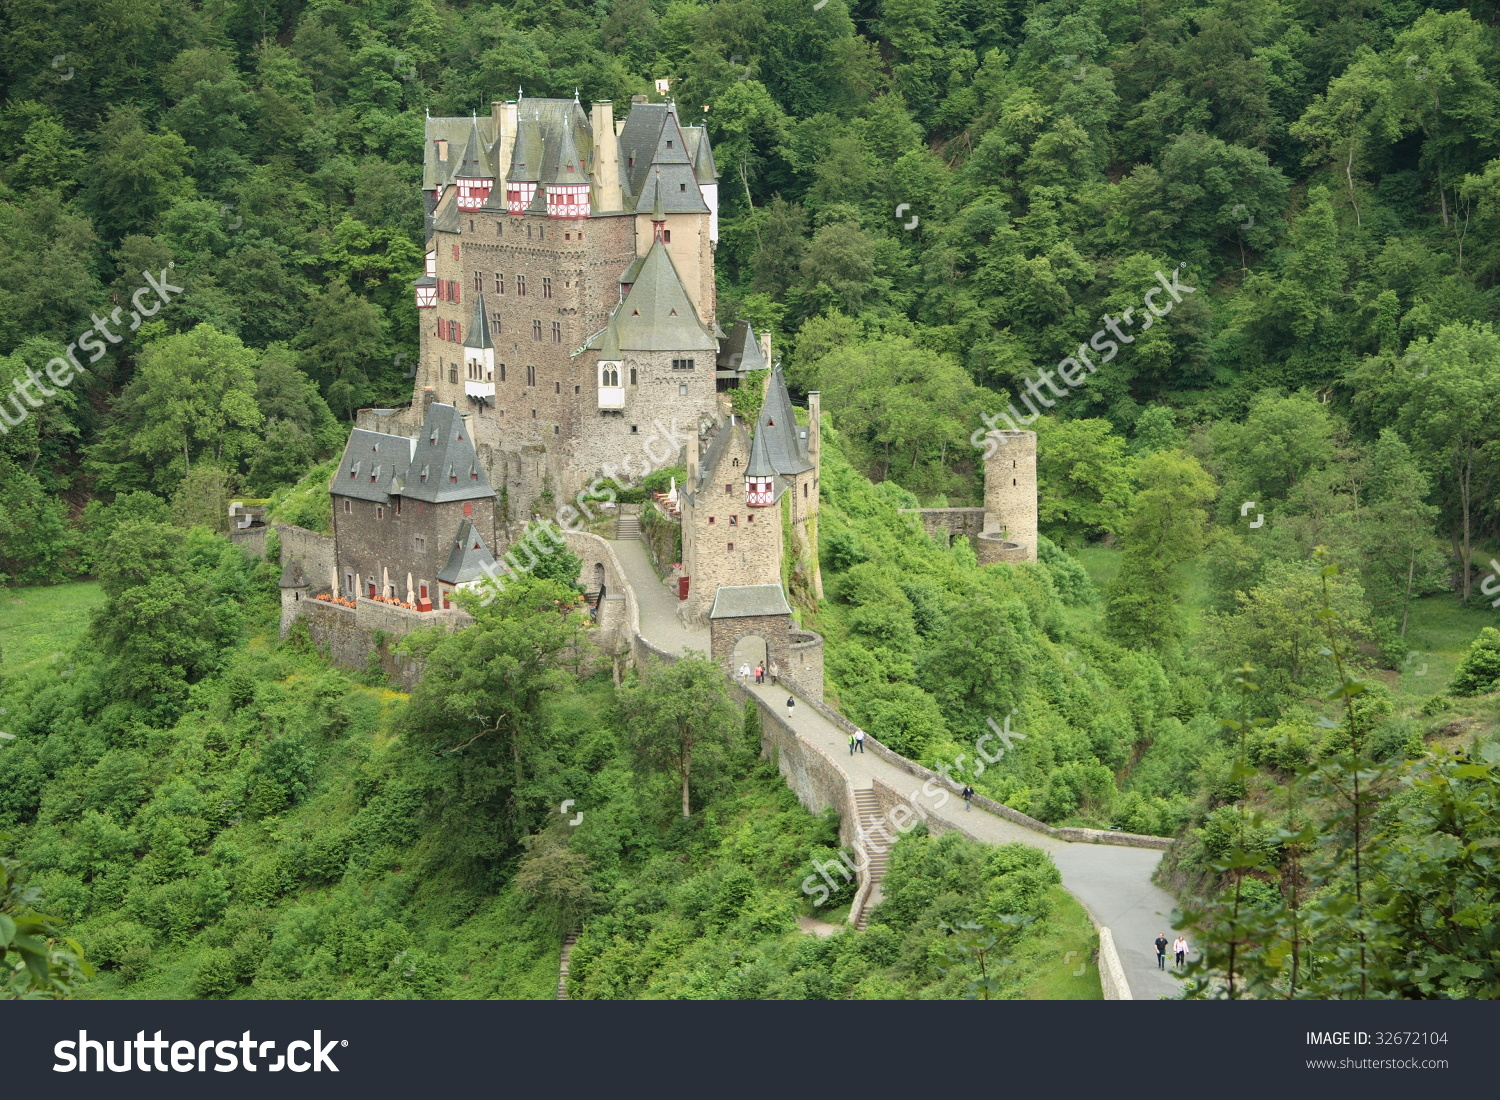 Medieval Castle Eltz In Moselle Valley, Germany Stock Photo.